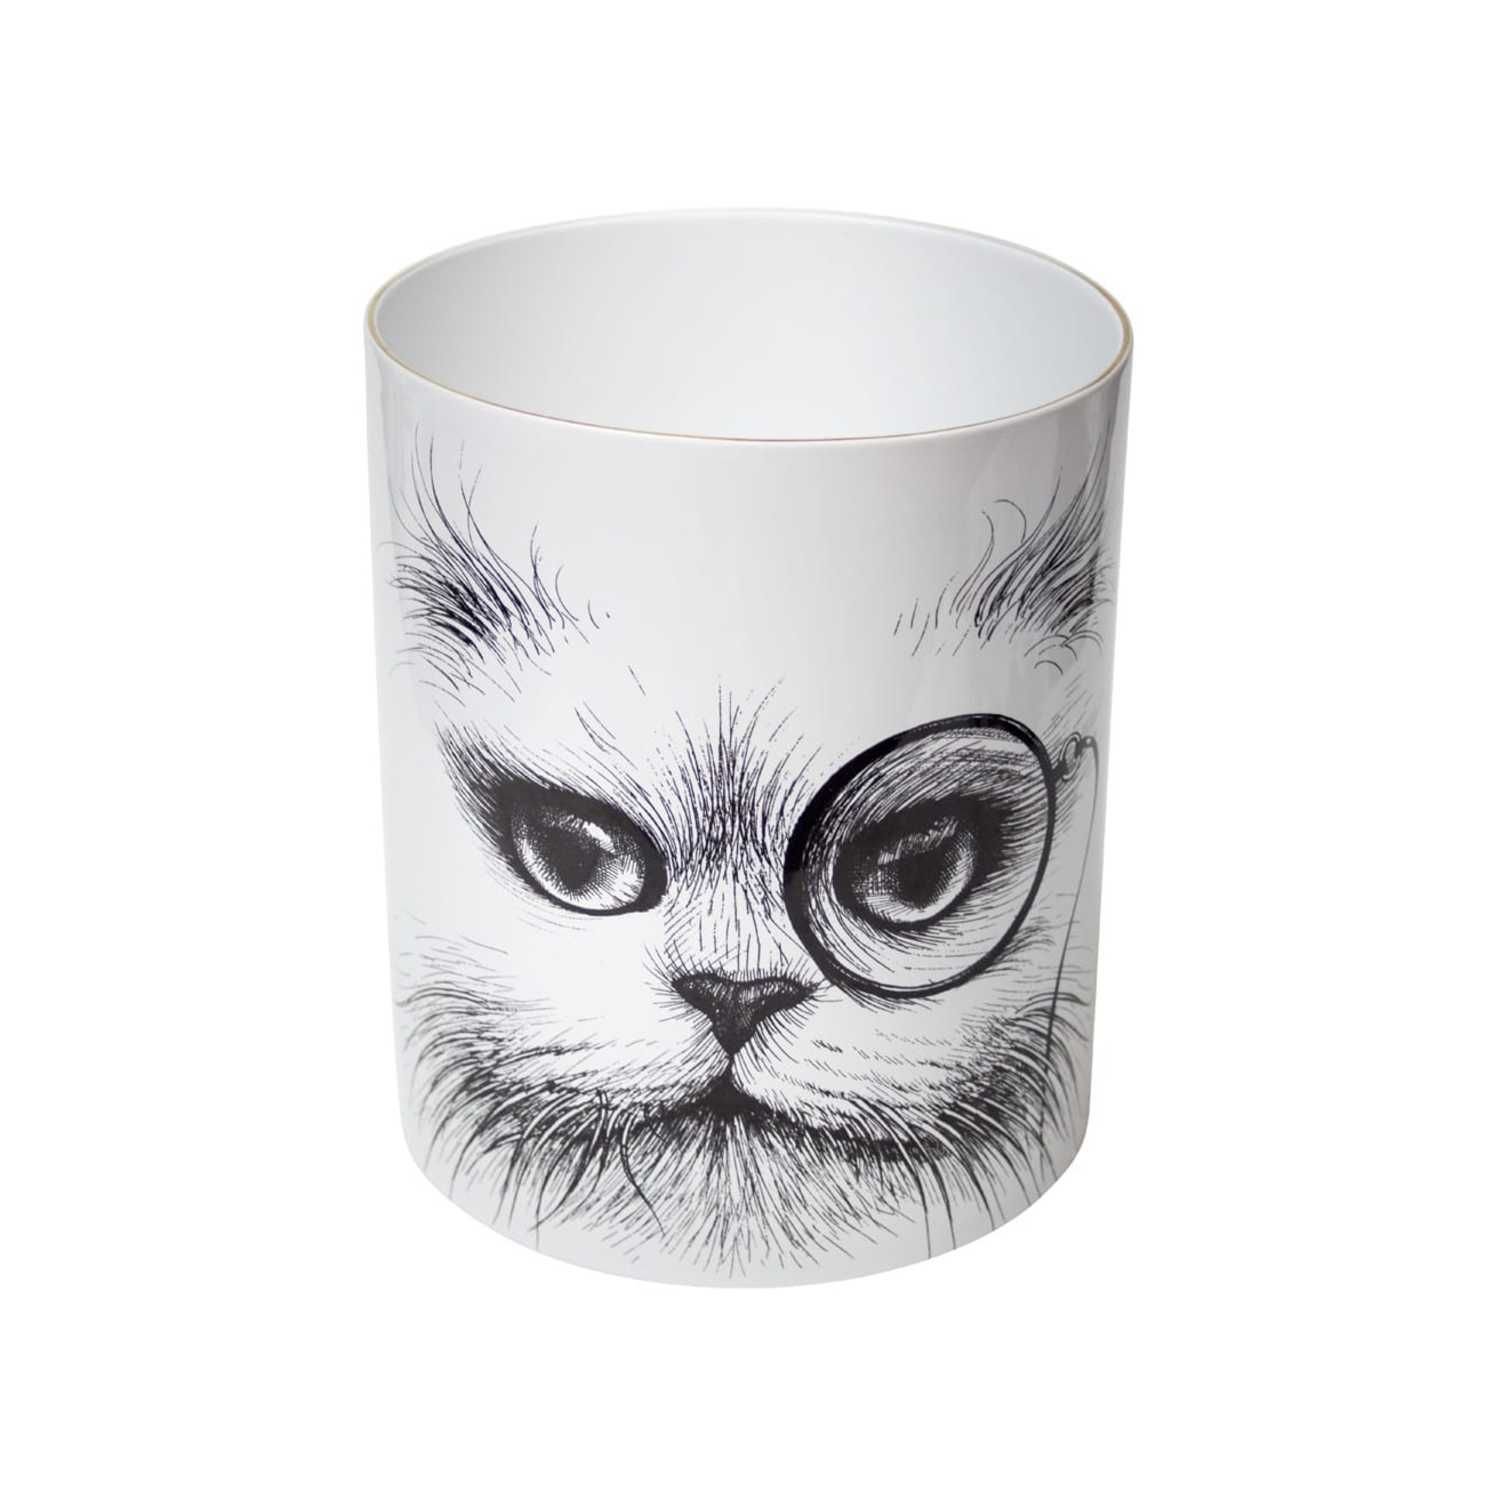 Supersize Cat Monocle / Cat No Monocle Vase-0